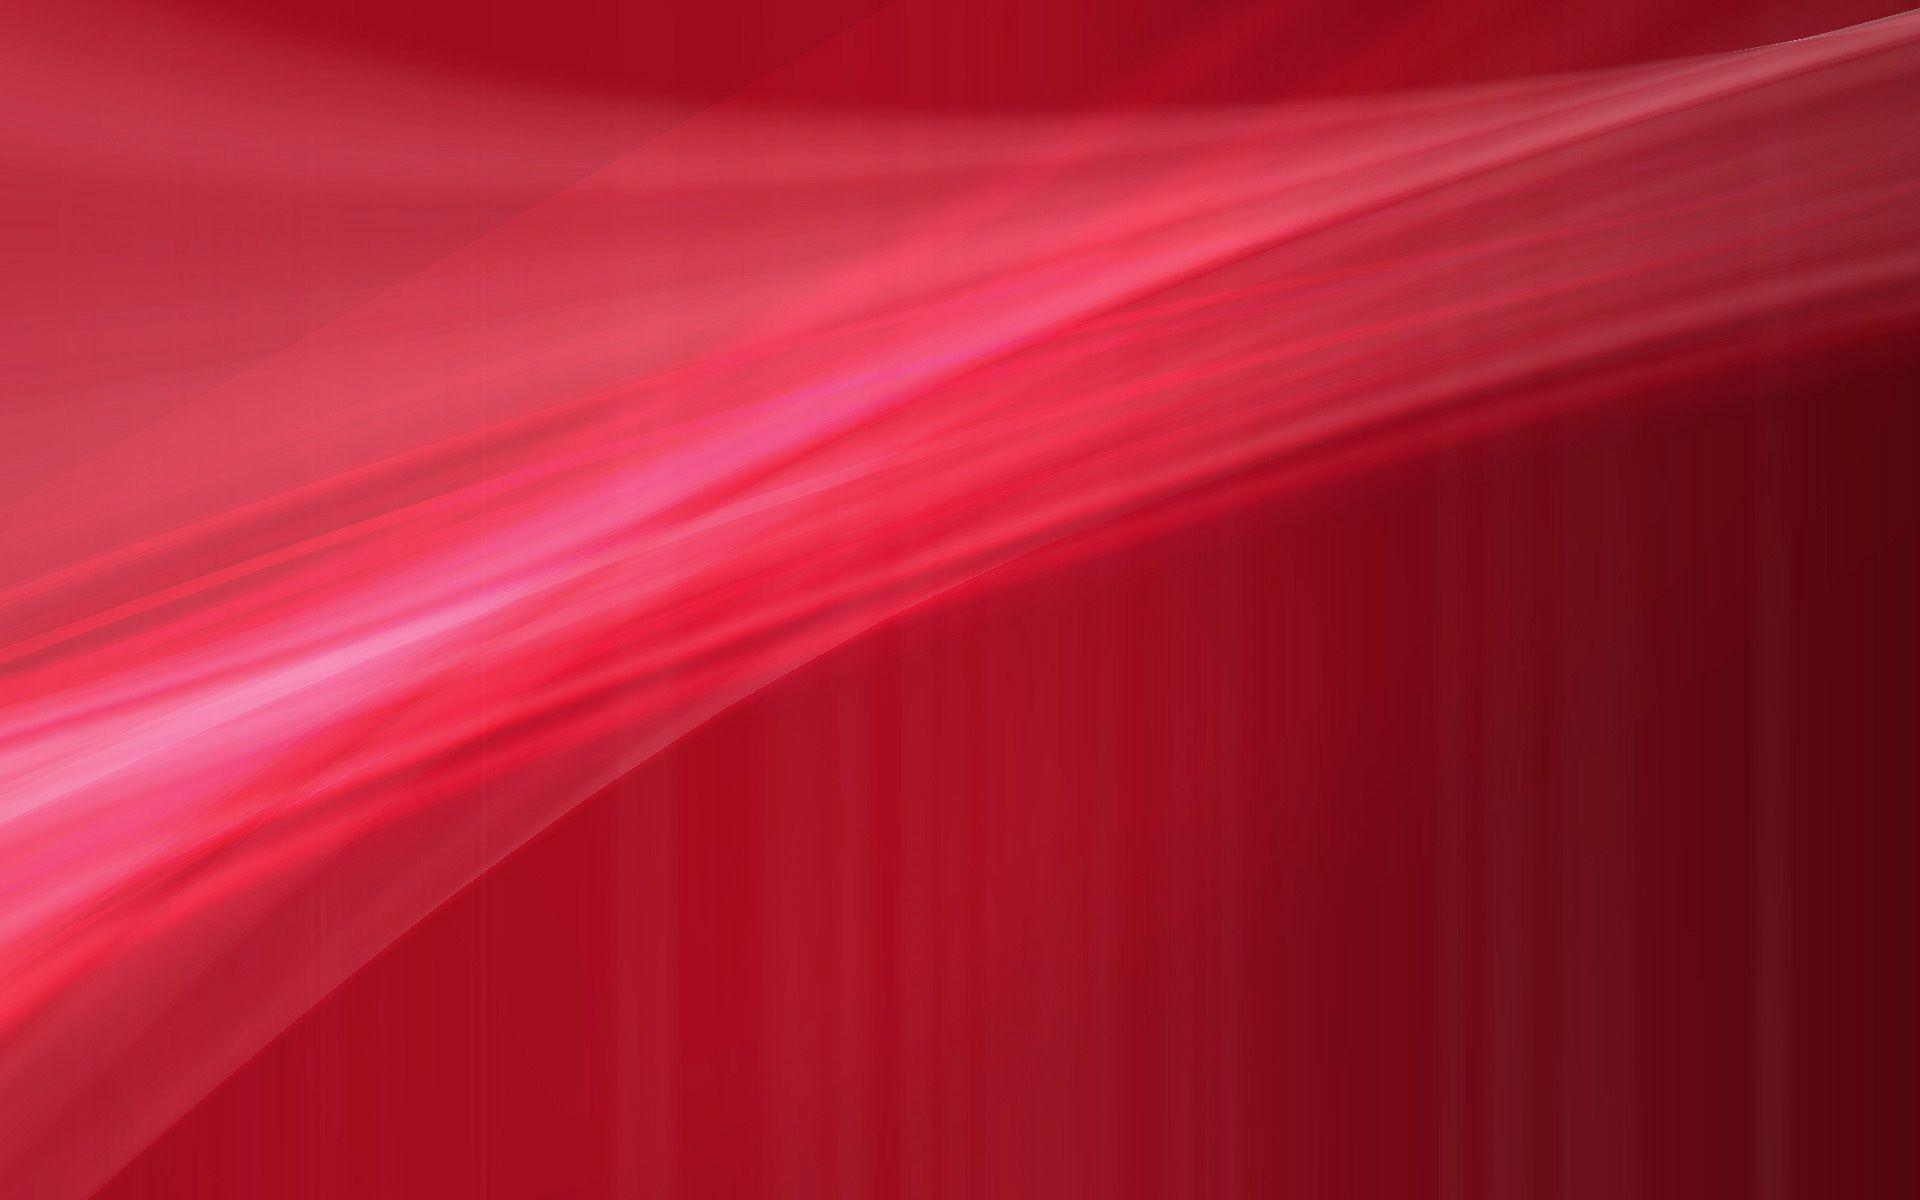 Plain Red Wallpapers - Wallpaper Cave